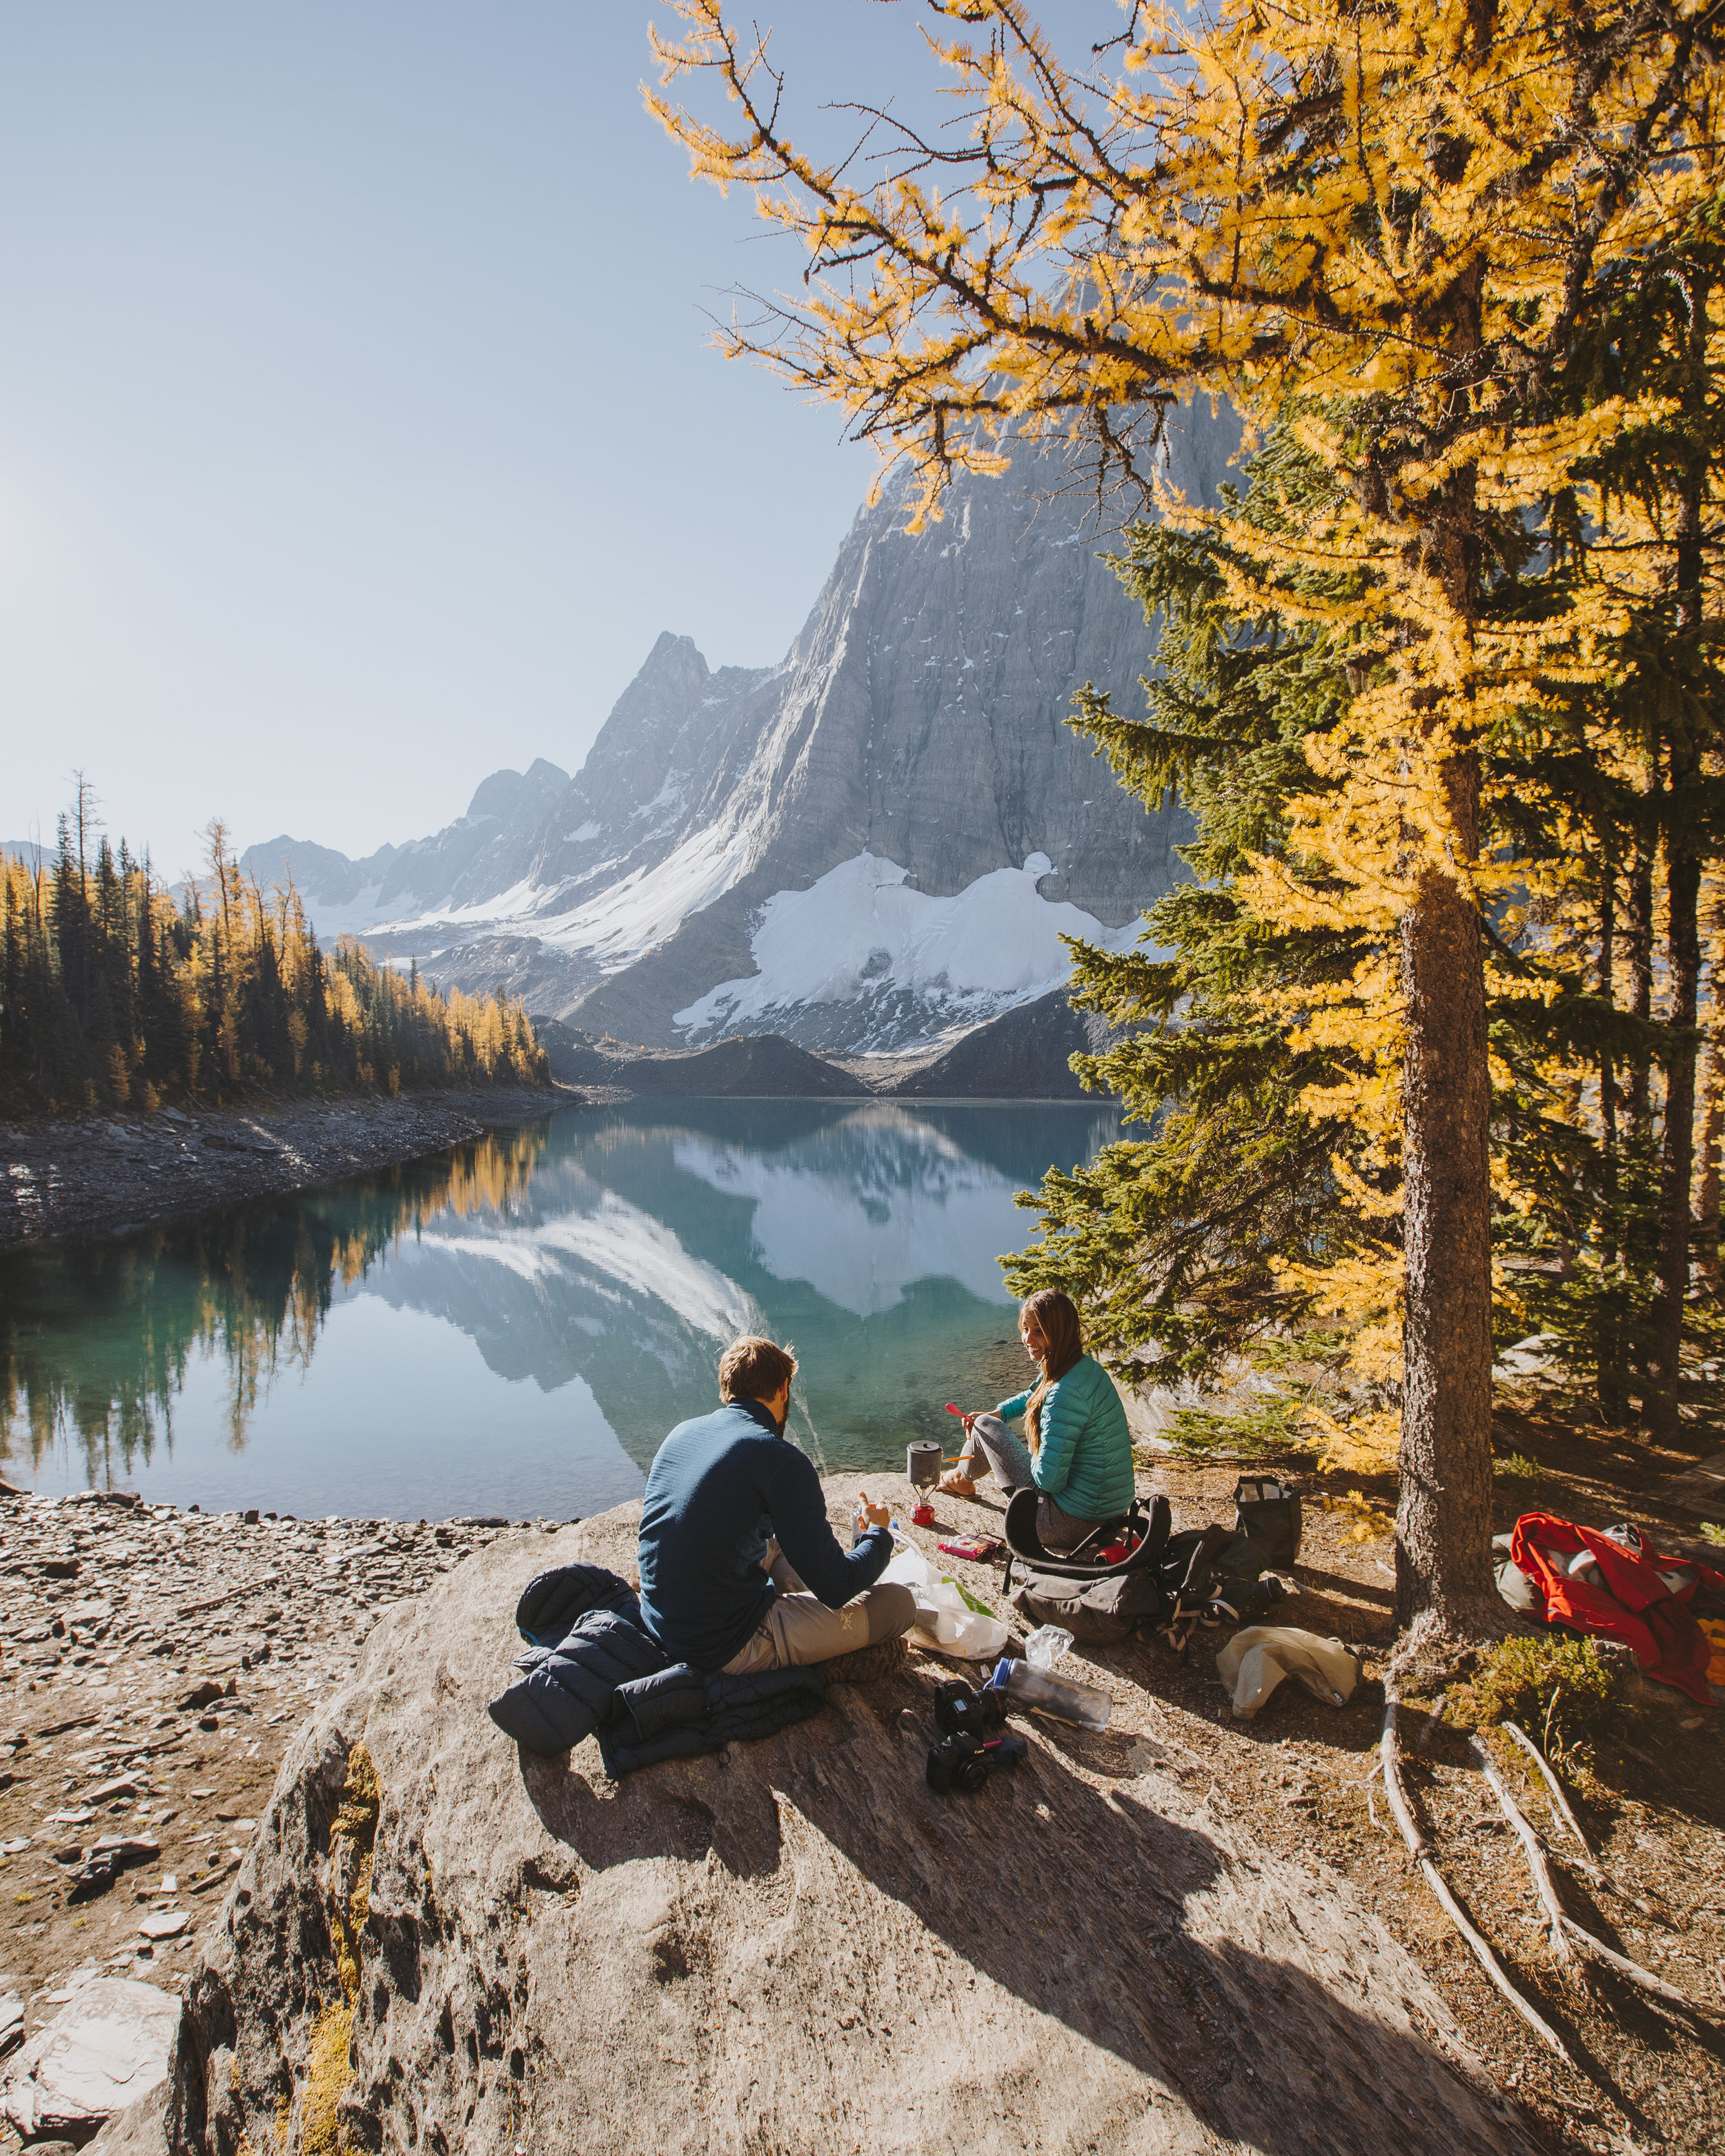 Morning coffee with friends at Floe Lake, photos / Bruin Alexander